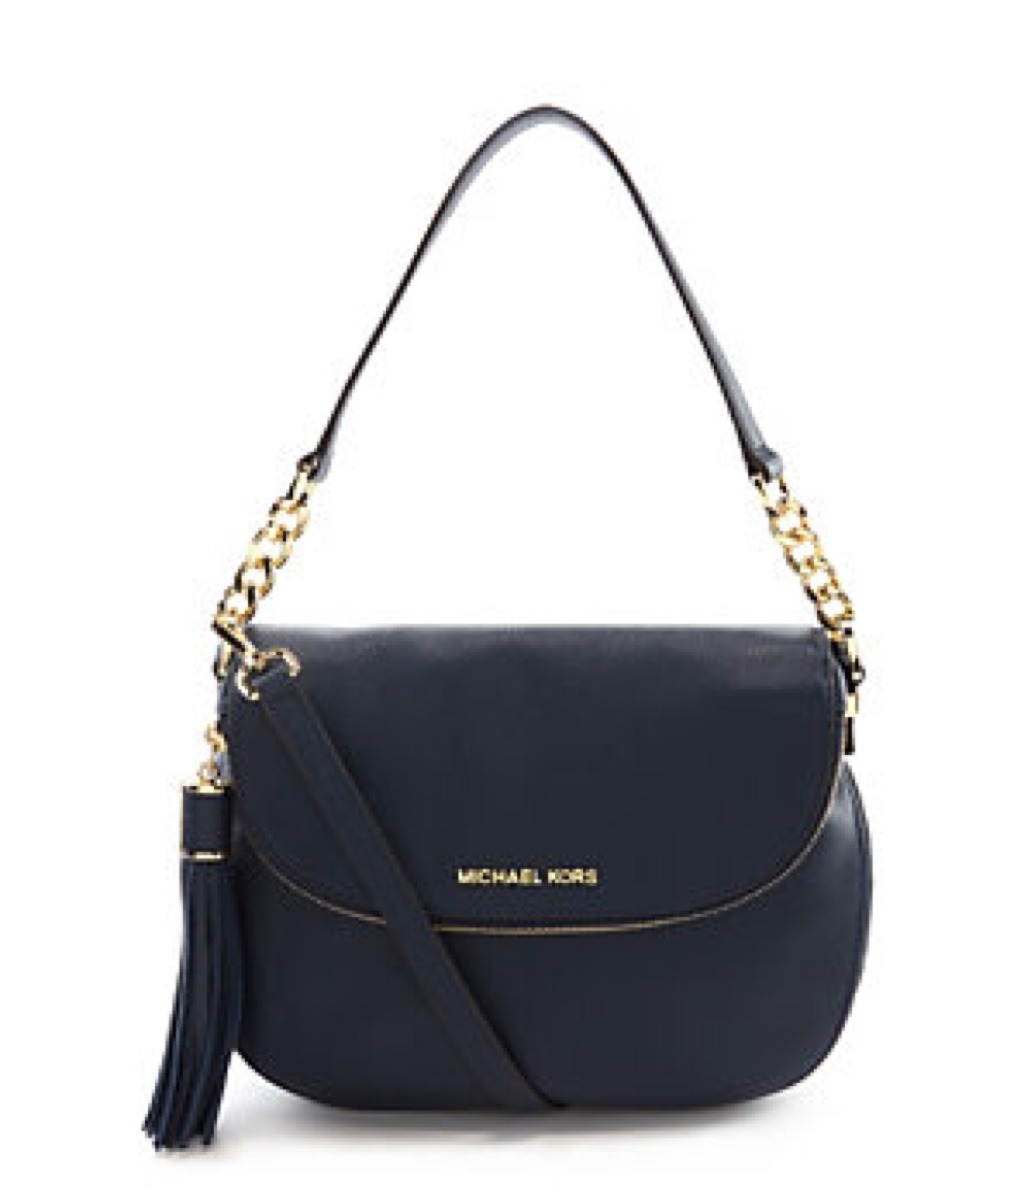 Bolsa De Mao Michael Kors Original : Bolsa michael kors negra car interior design